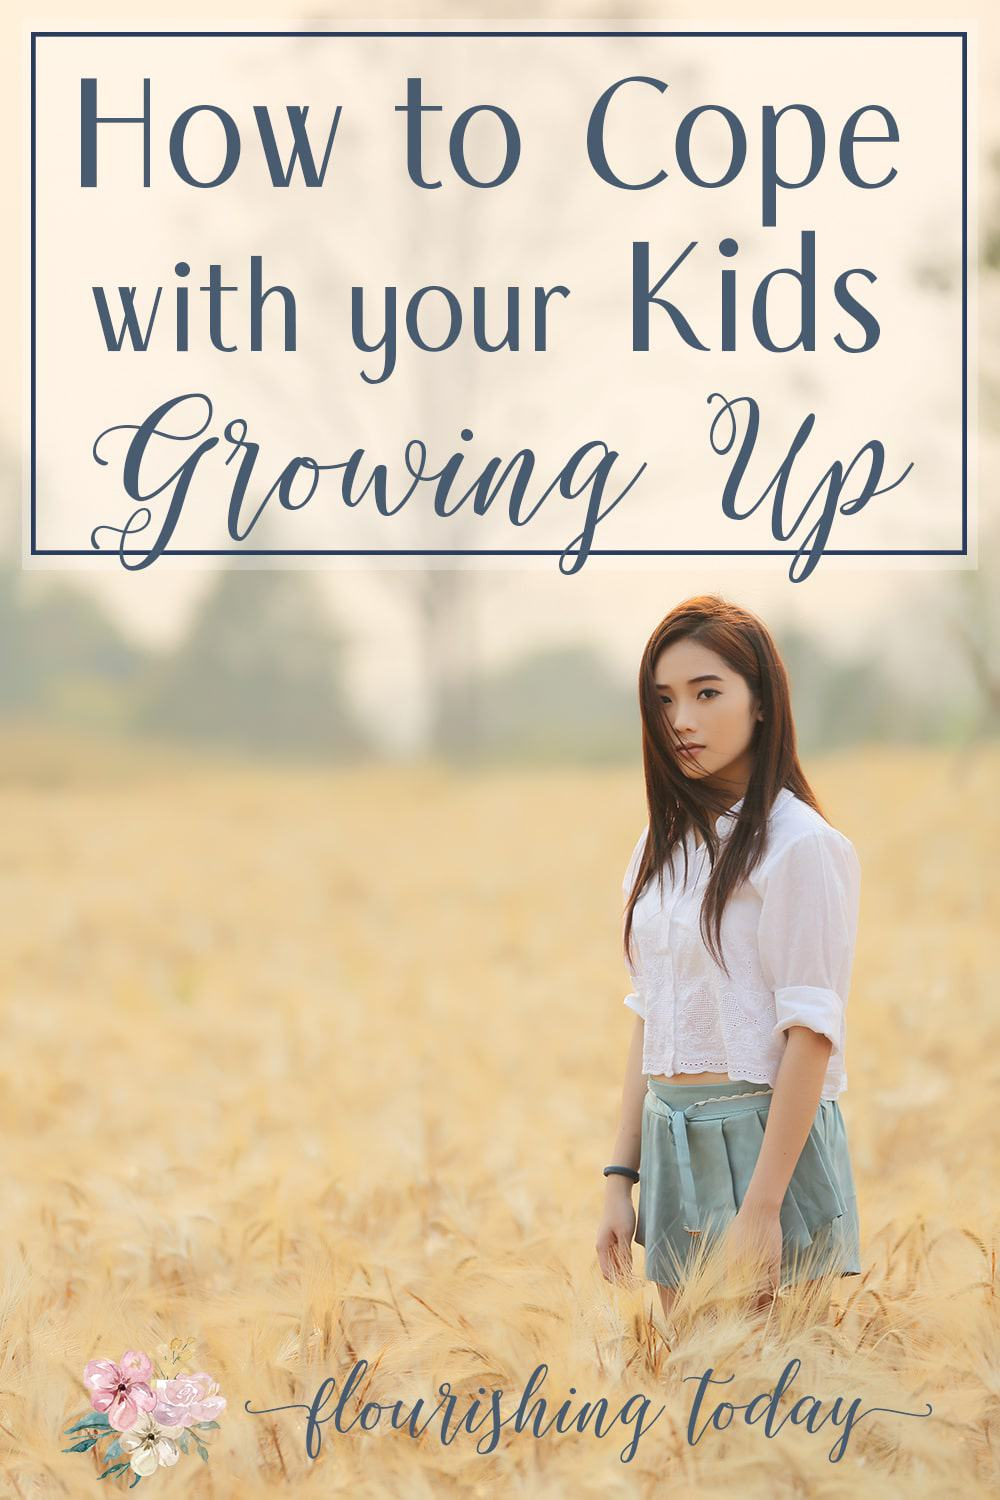 Are you having a hard time with your children growing up? Here's a few tips on how you can not just cope, but be confident and equipped for the next season.